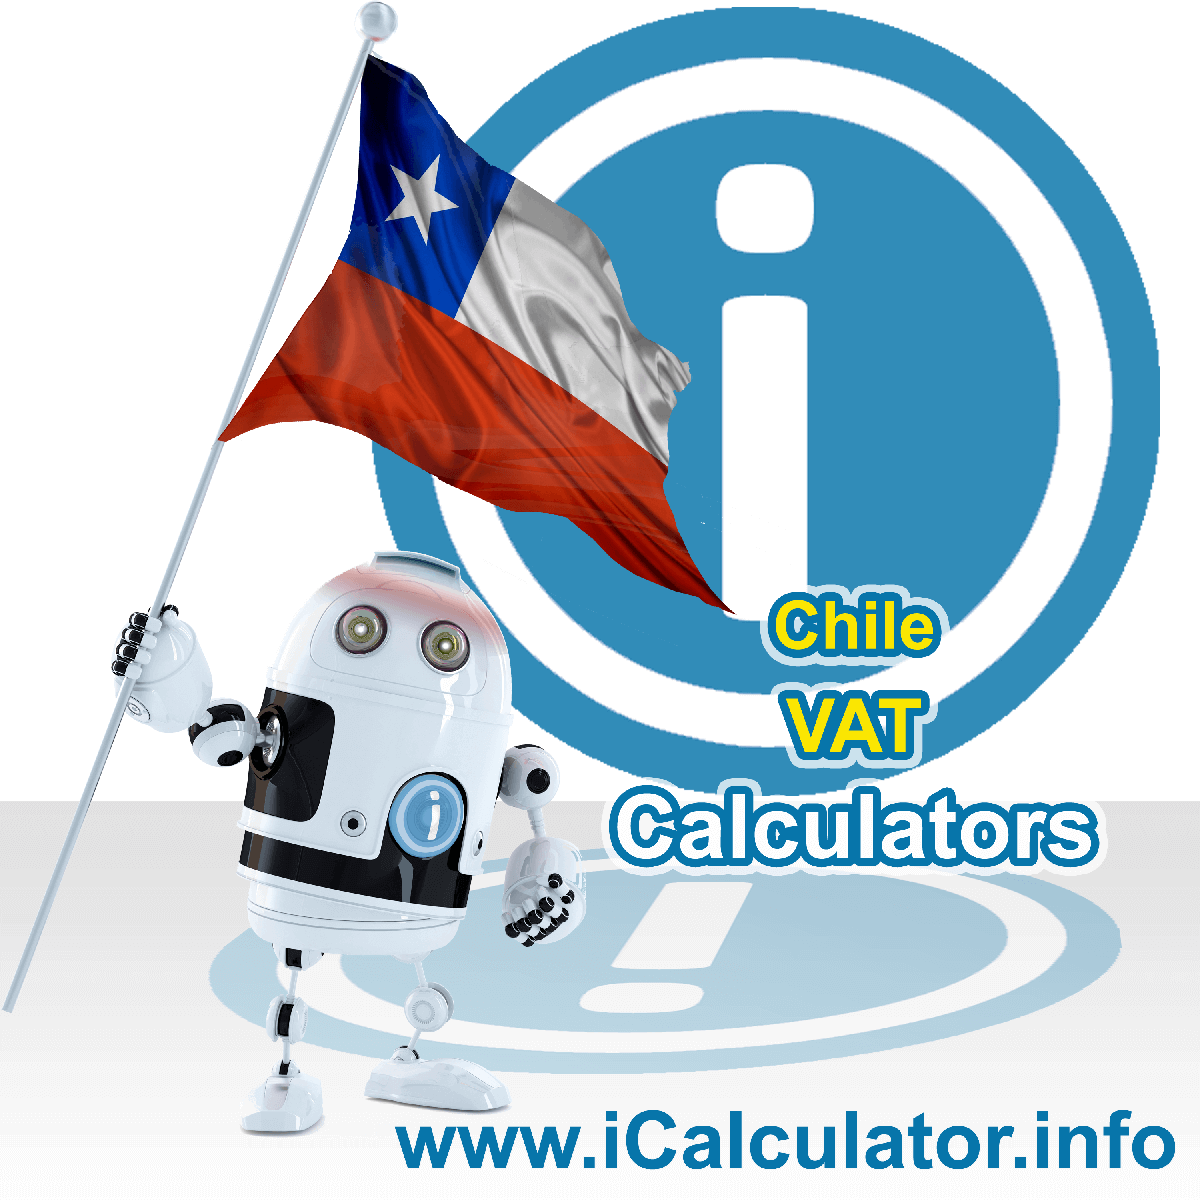 Chile VAT Calculator. This image shows the Chile flag and information relating to the VAT formula used for calculating Value Added Tax in Chile using the Chile VAT Calculator in 2021